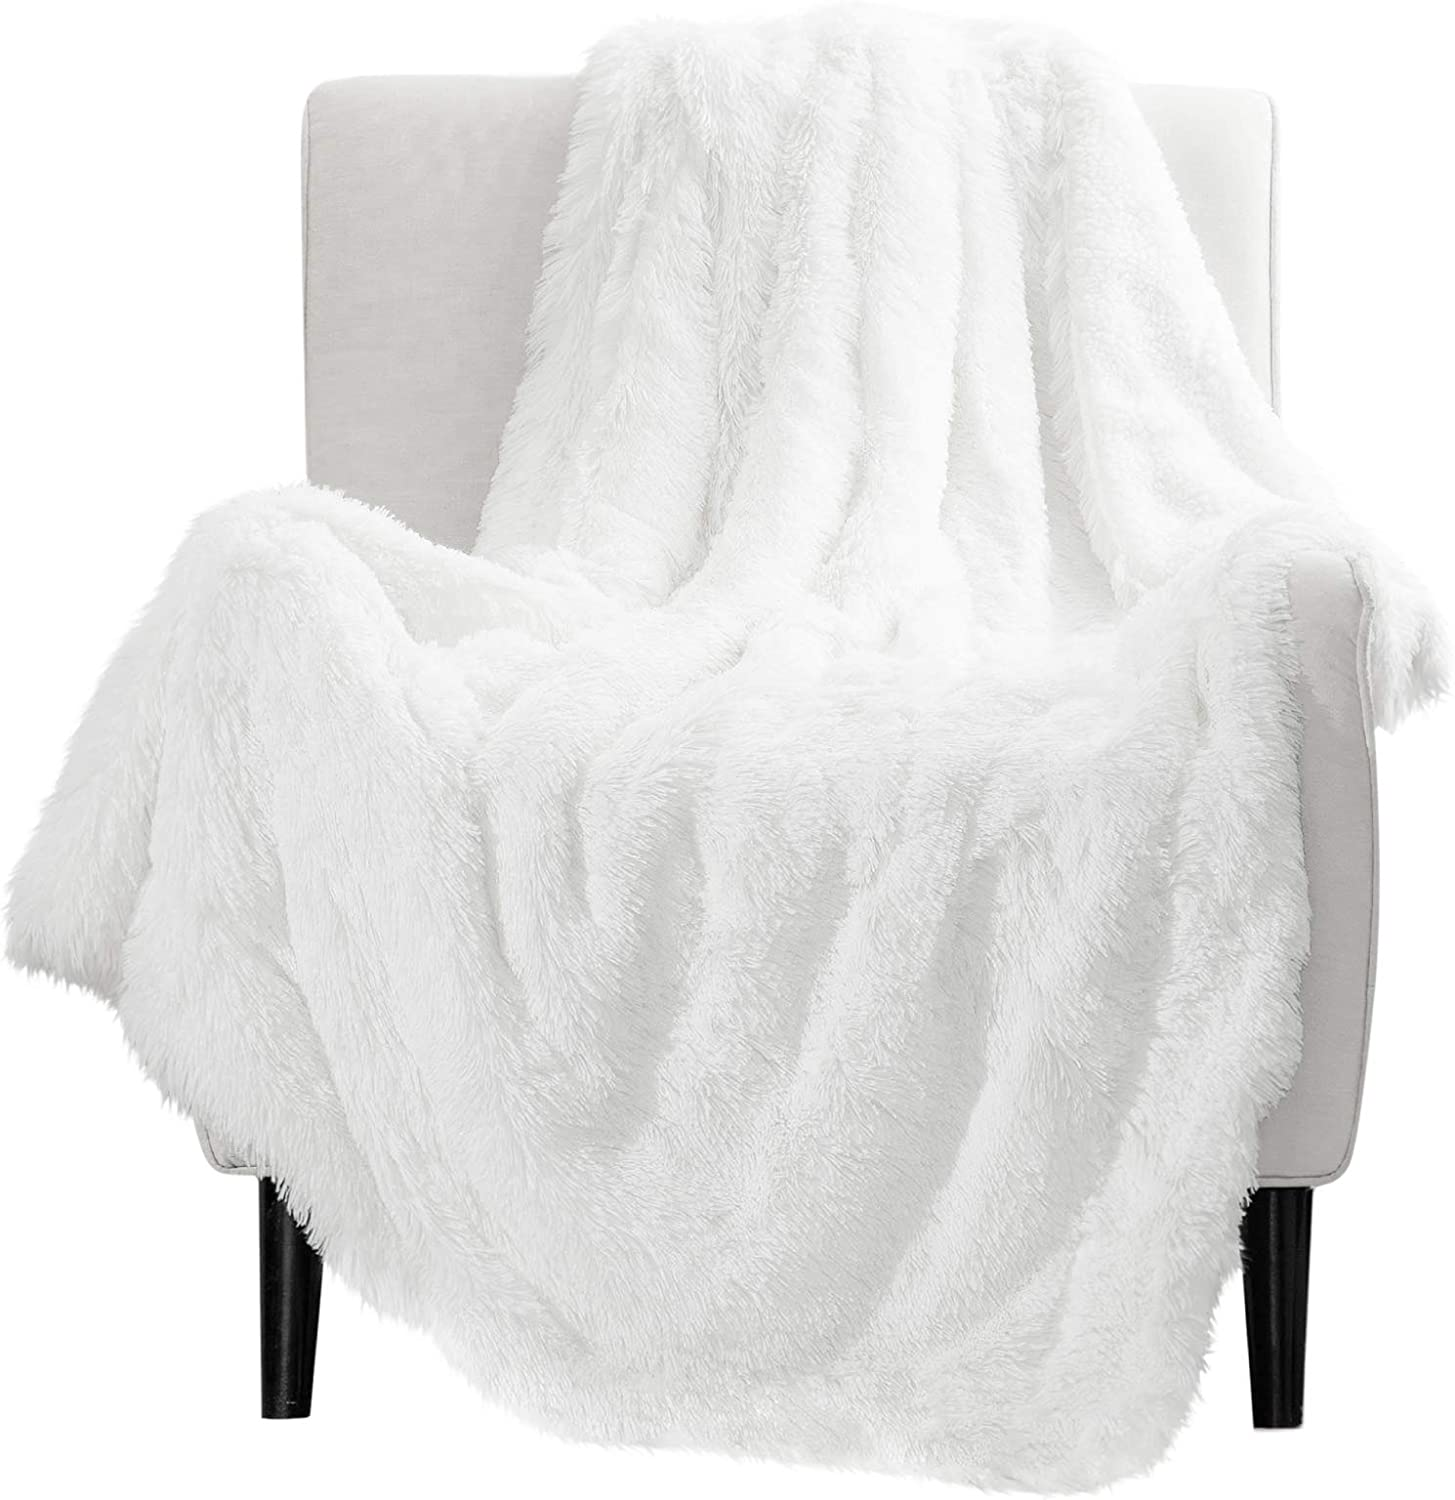 Bedsure Soft Fuzzy Faux Fur Shaggy Blanket Throw Reversible Sherpa Fleece Shag T